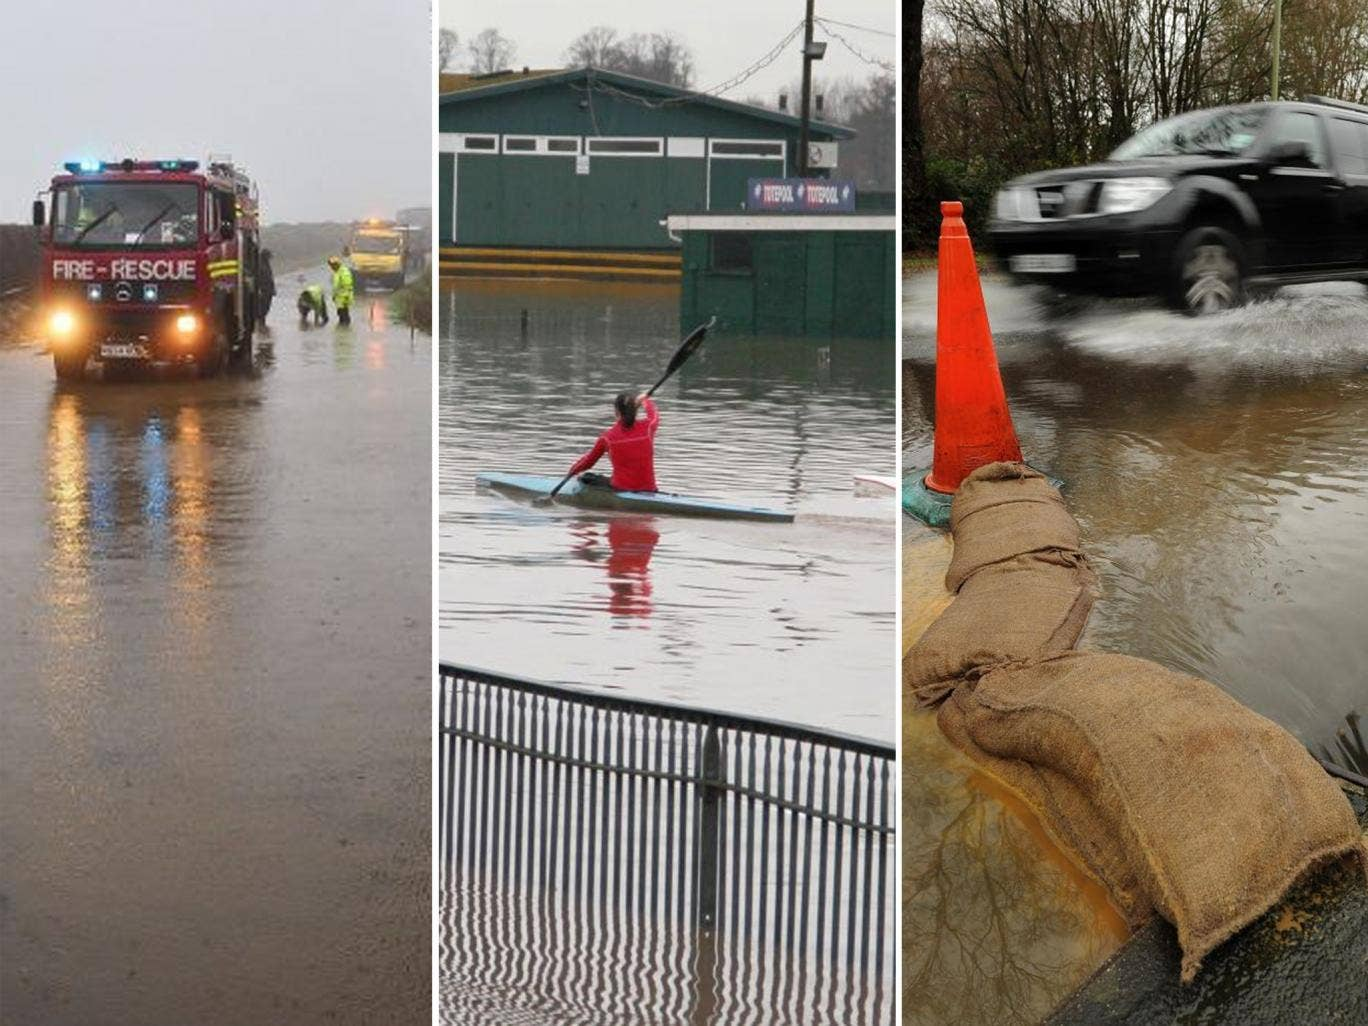 Fire and Rescue services work to clear a section of the A399 in North Devon, kayakers train on a flooded Worcester Racecourse and a vehicle makes its way through flood water on Calmore Road in Totton, Hampshire